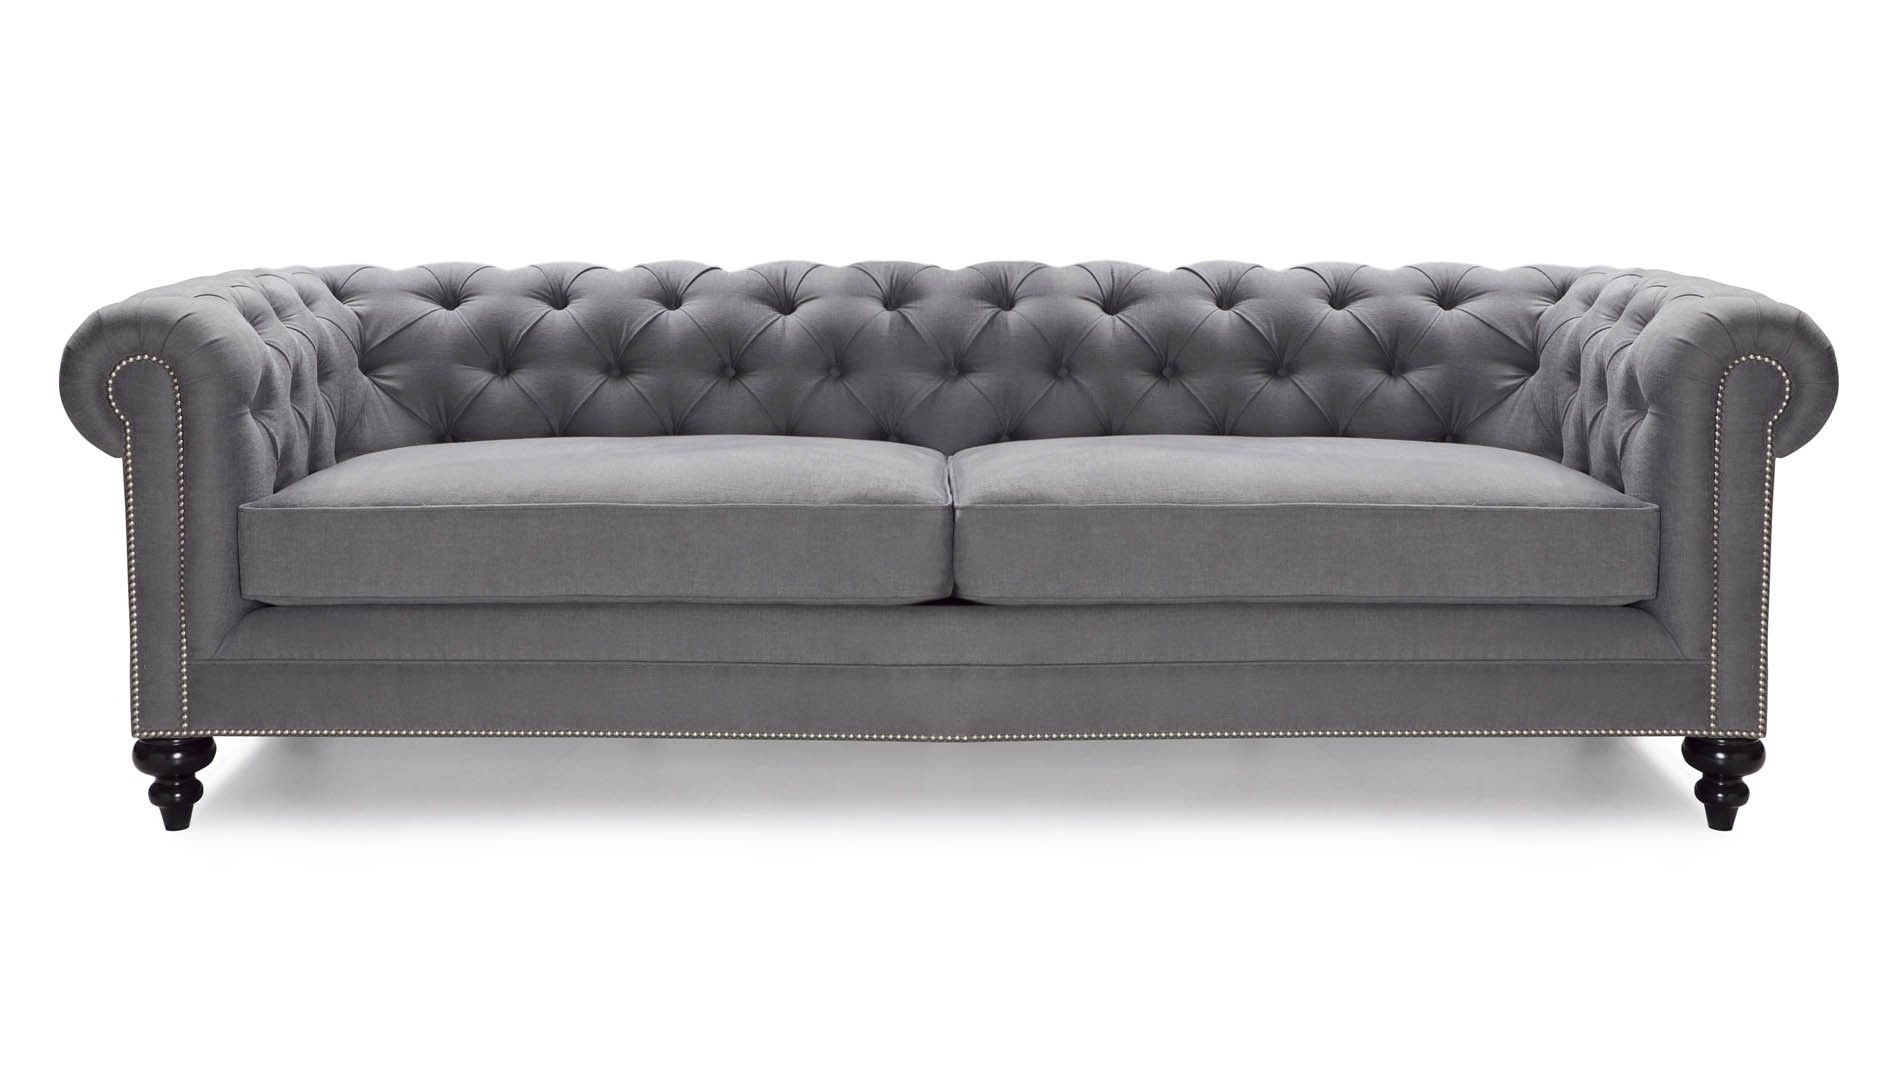 Buy Ikandi Hasker Sofa Online At LuxDeco. Offer Your Space A Refined  Gentlemanly Touch With The Hasker Sofa.